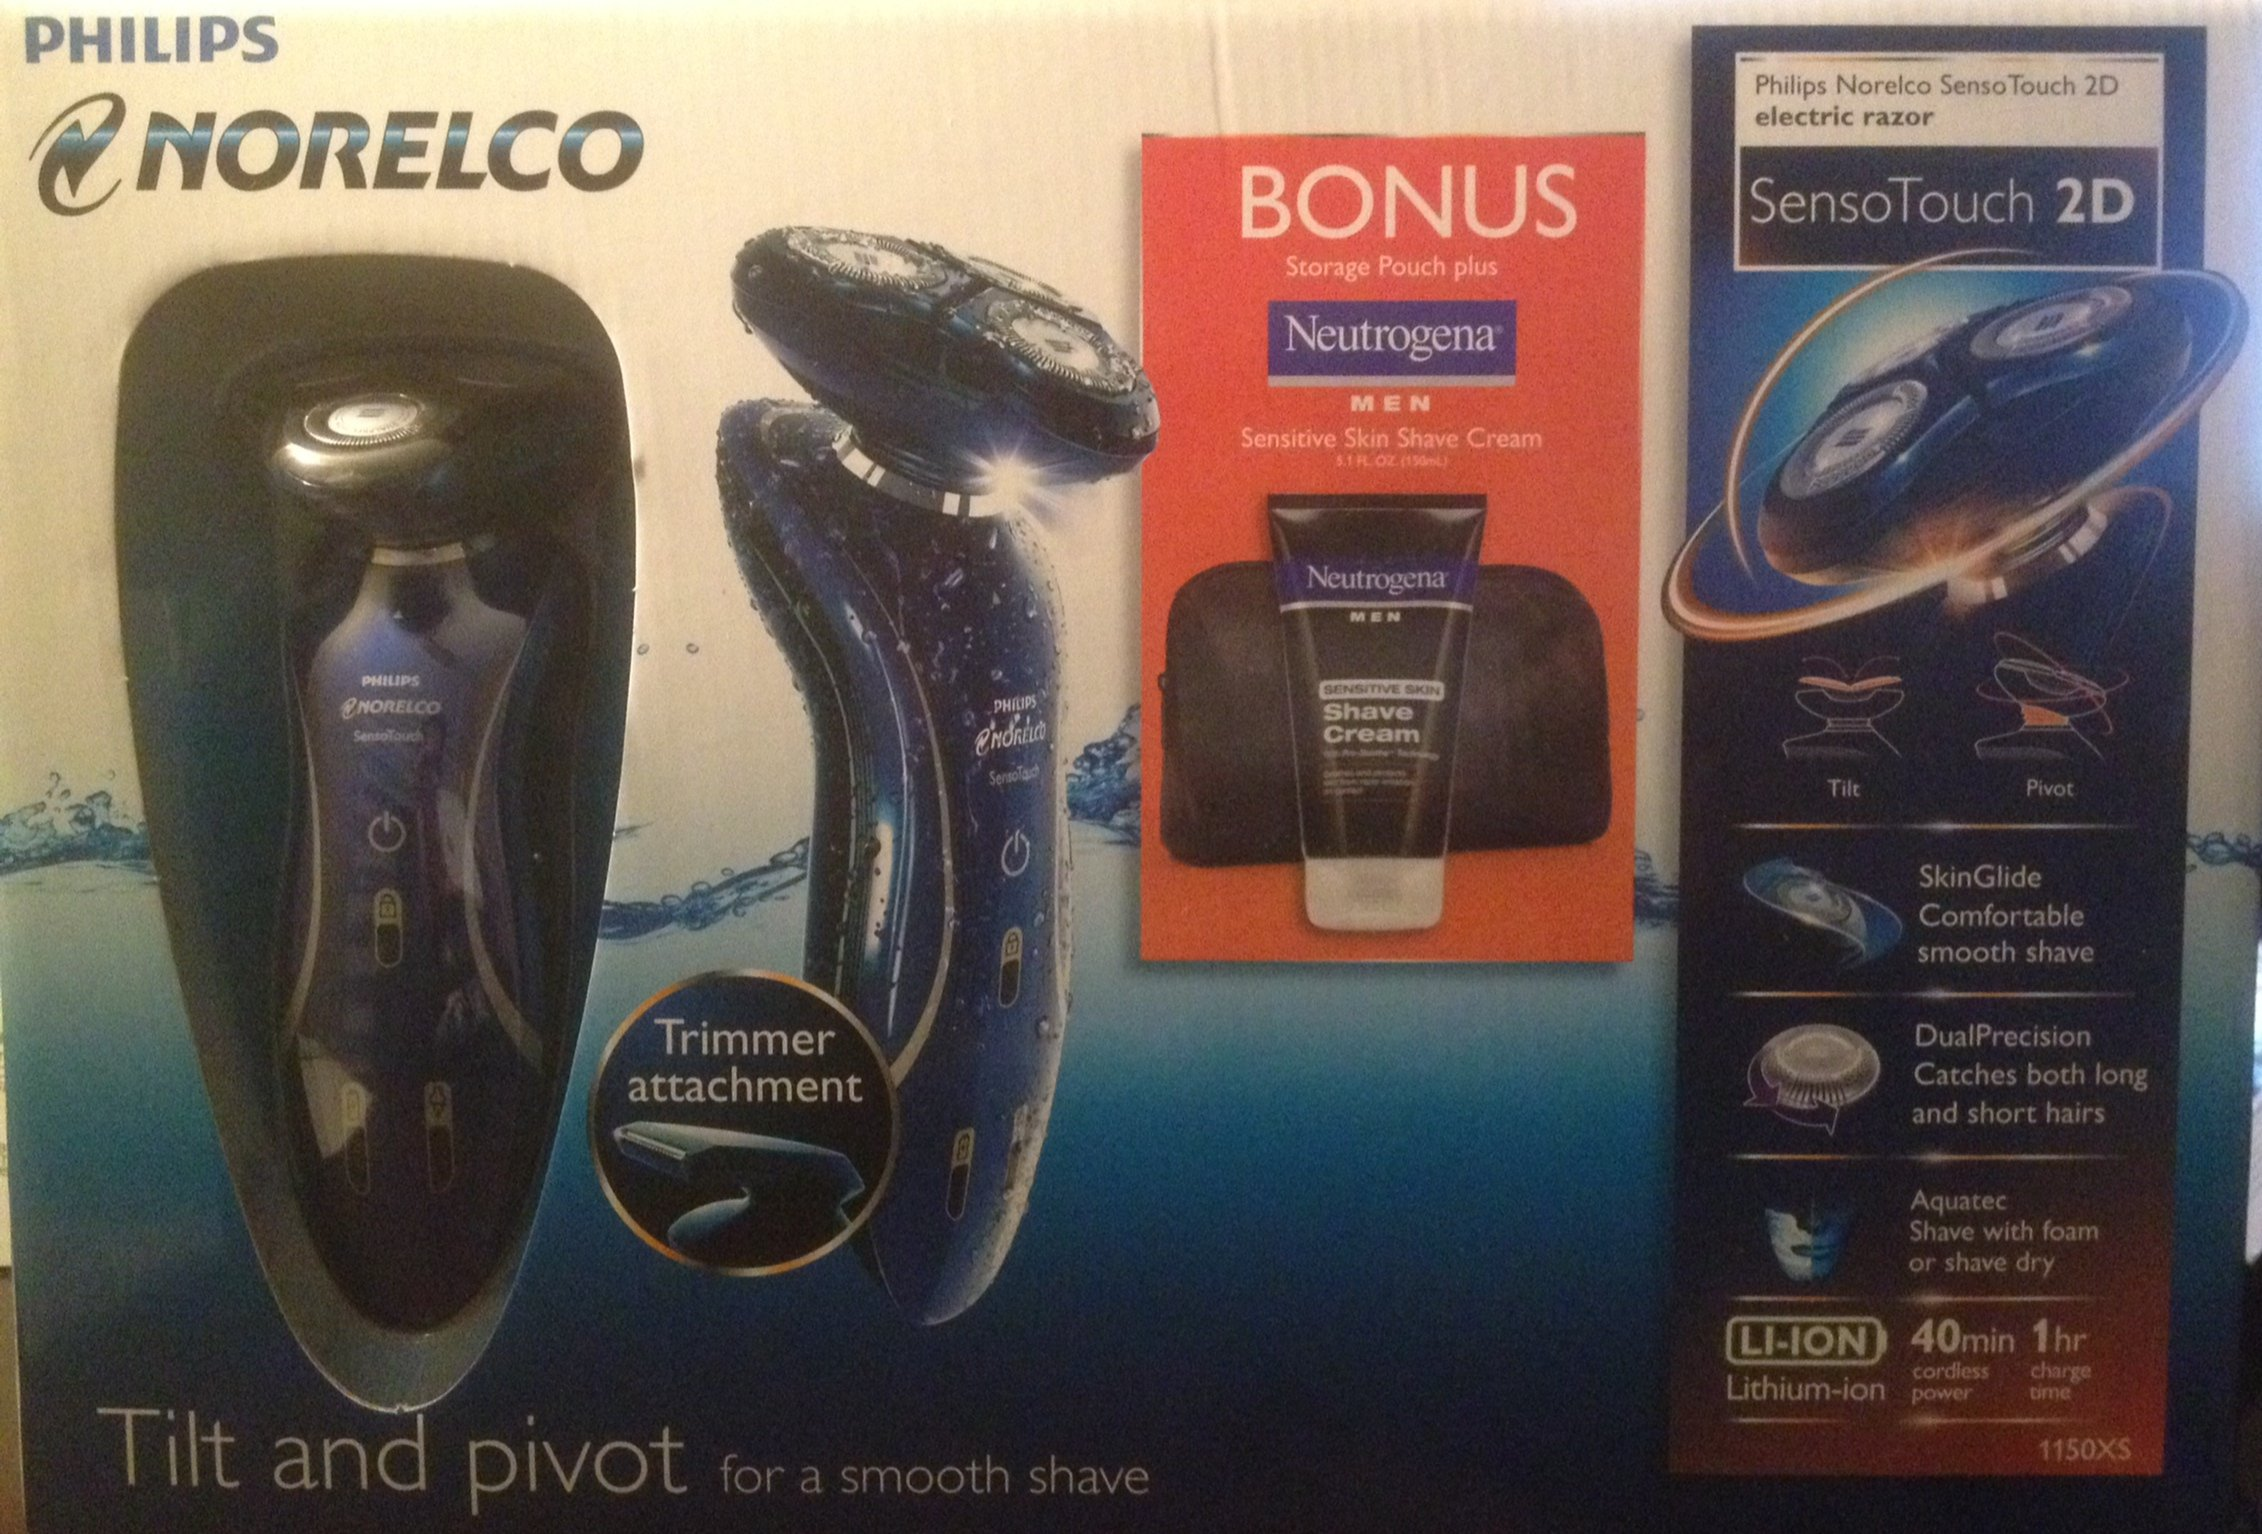 Philips Norelco Sensor Touch 2D Electric Razor 1150XS with Neutrogena Men Sensitive Skin Shave Cream